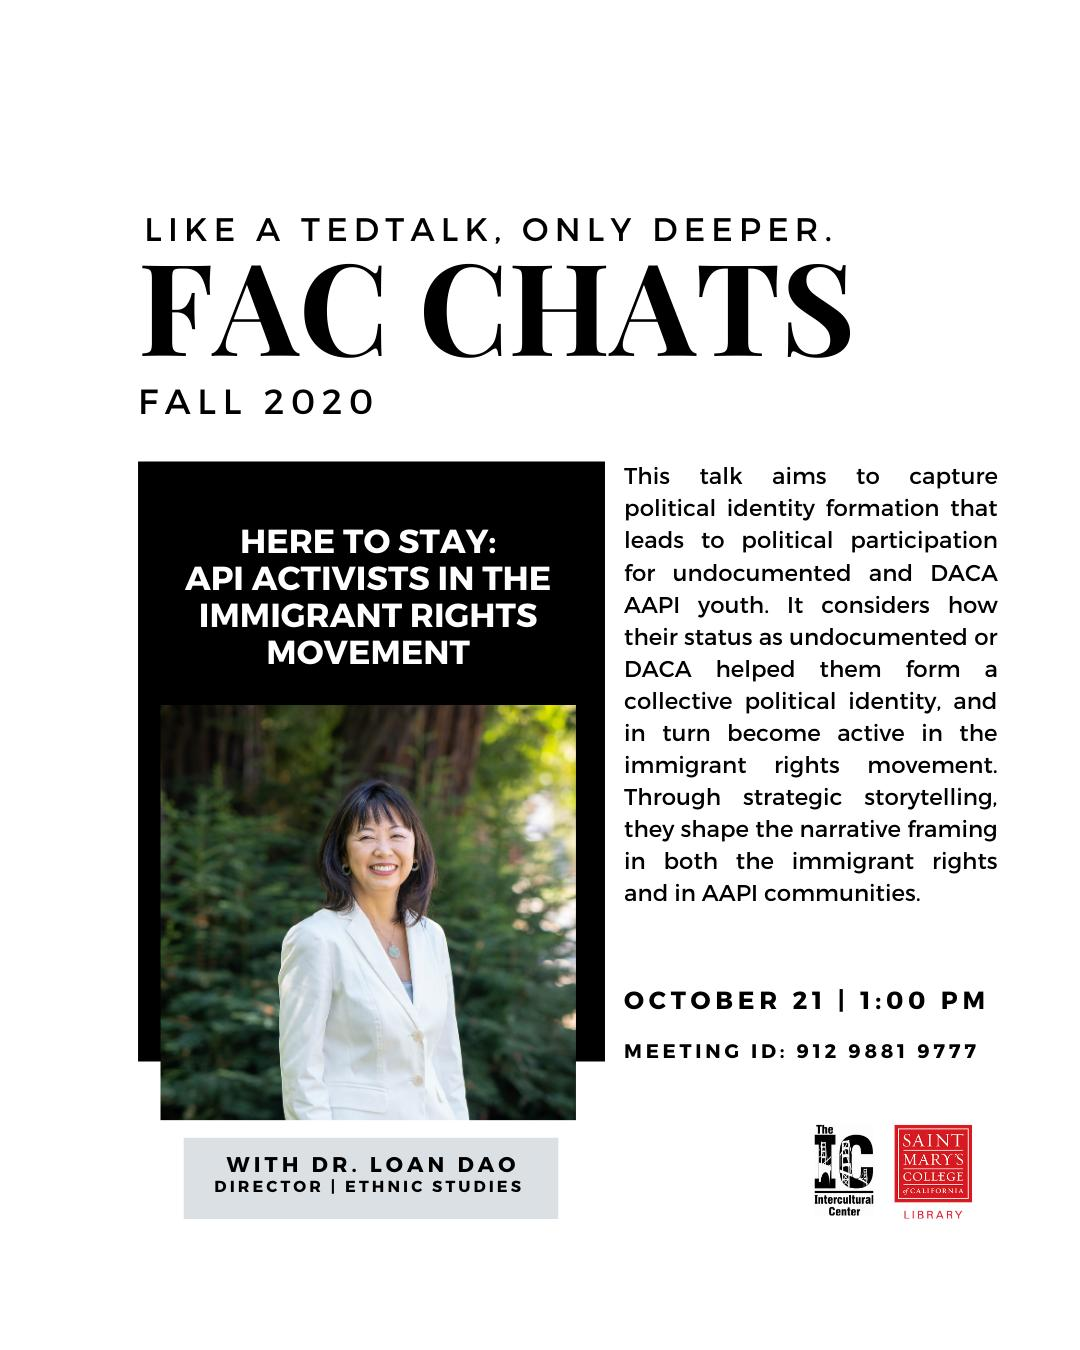 FAC CHAT with Dr. Loan Dao